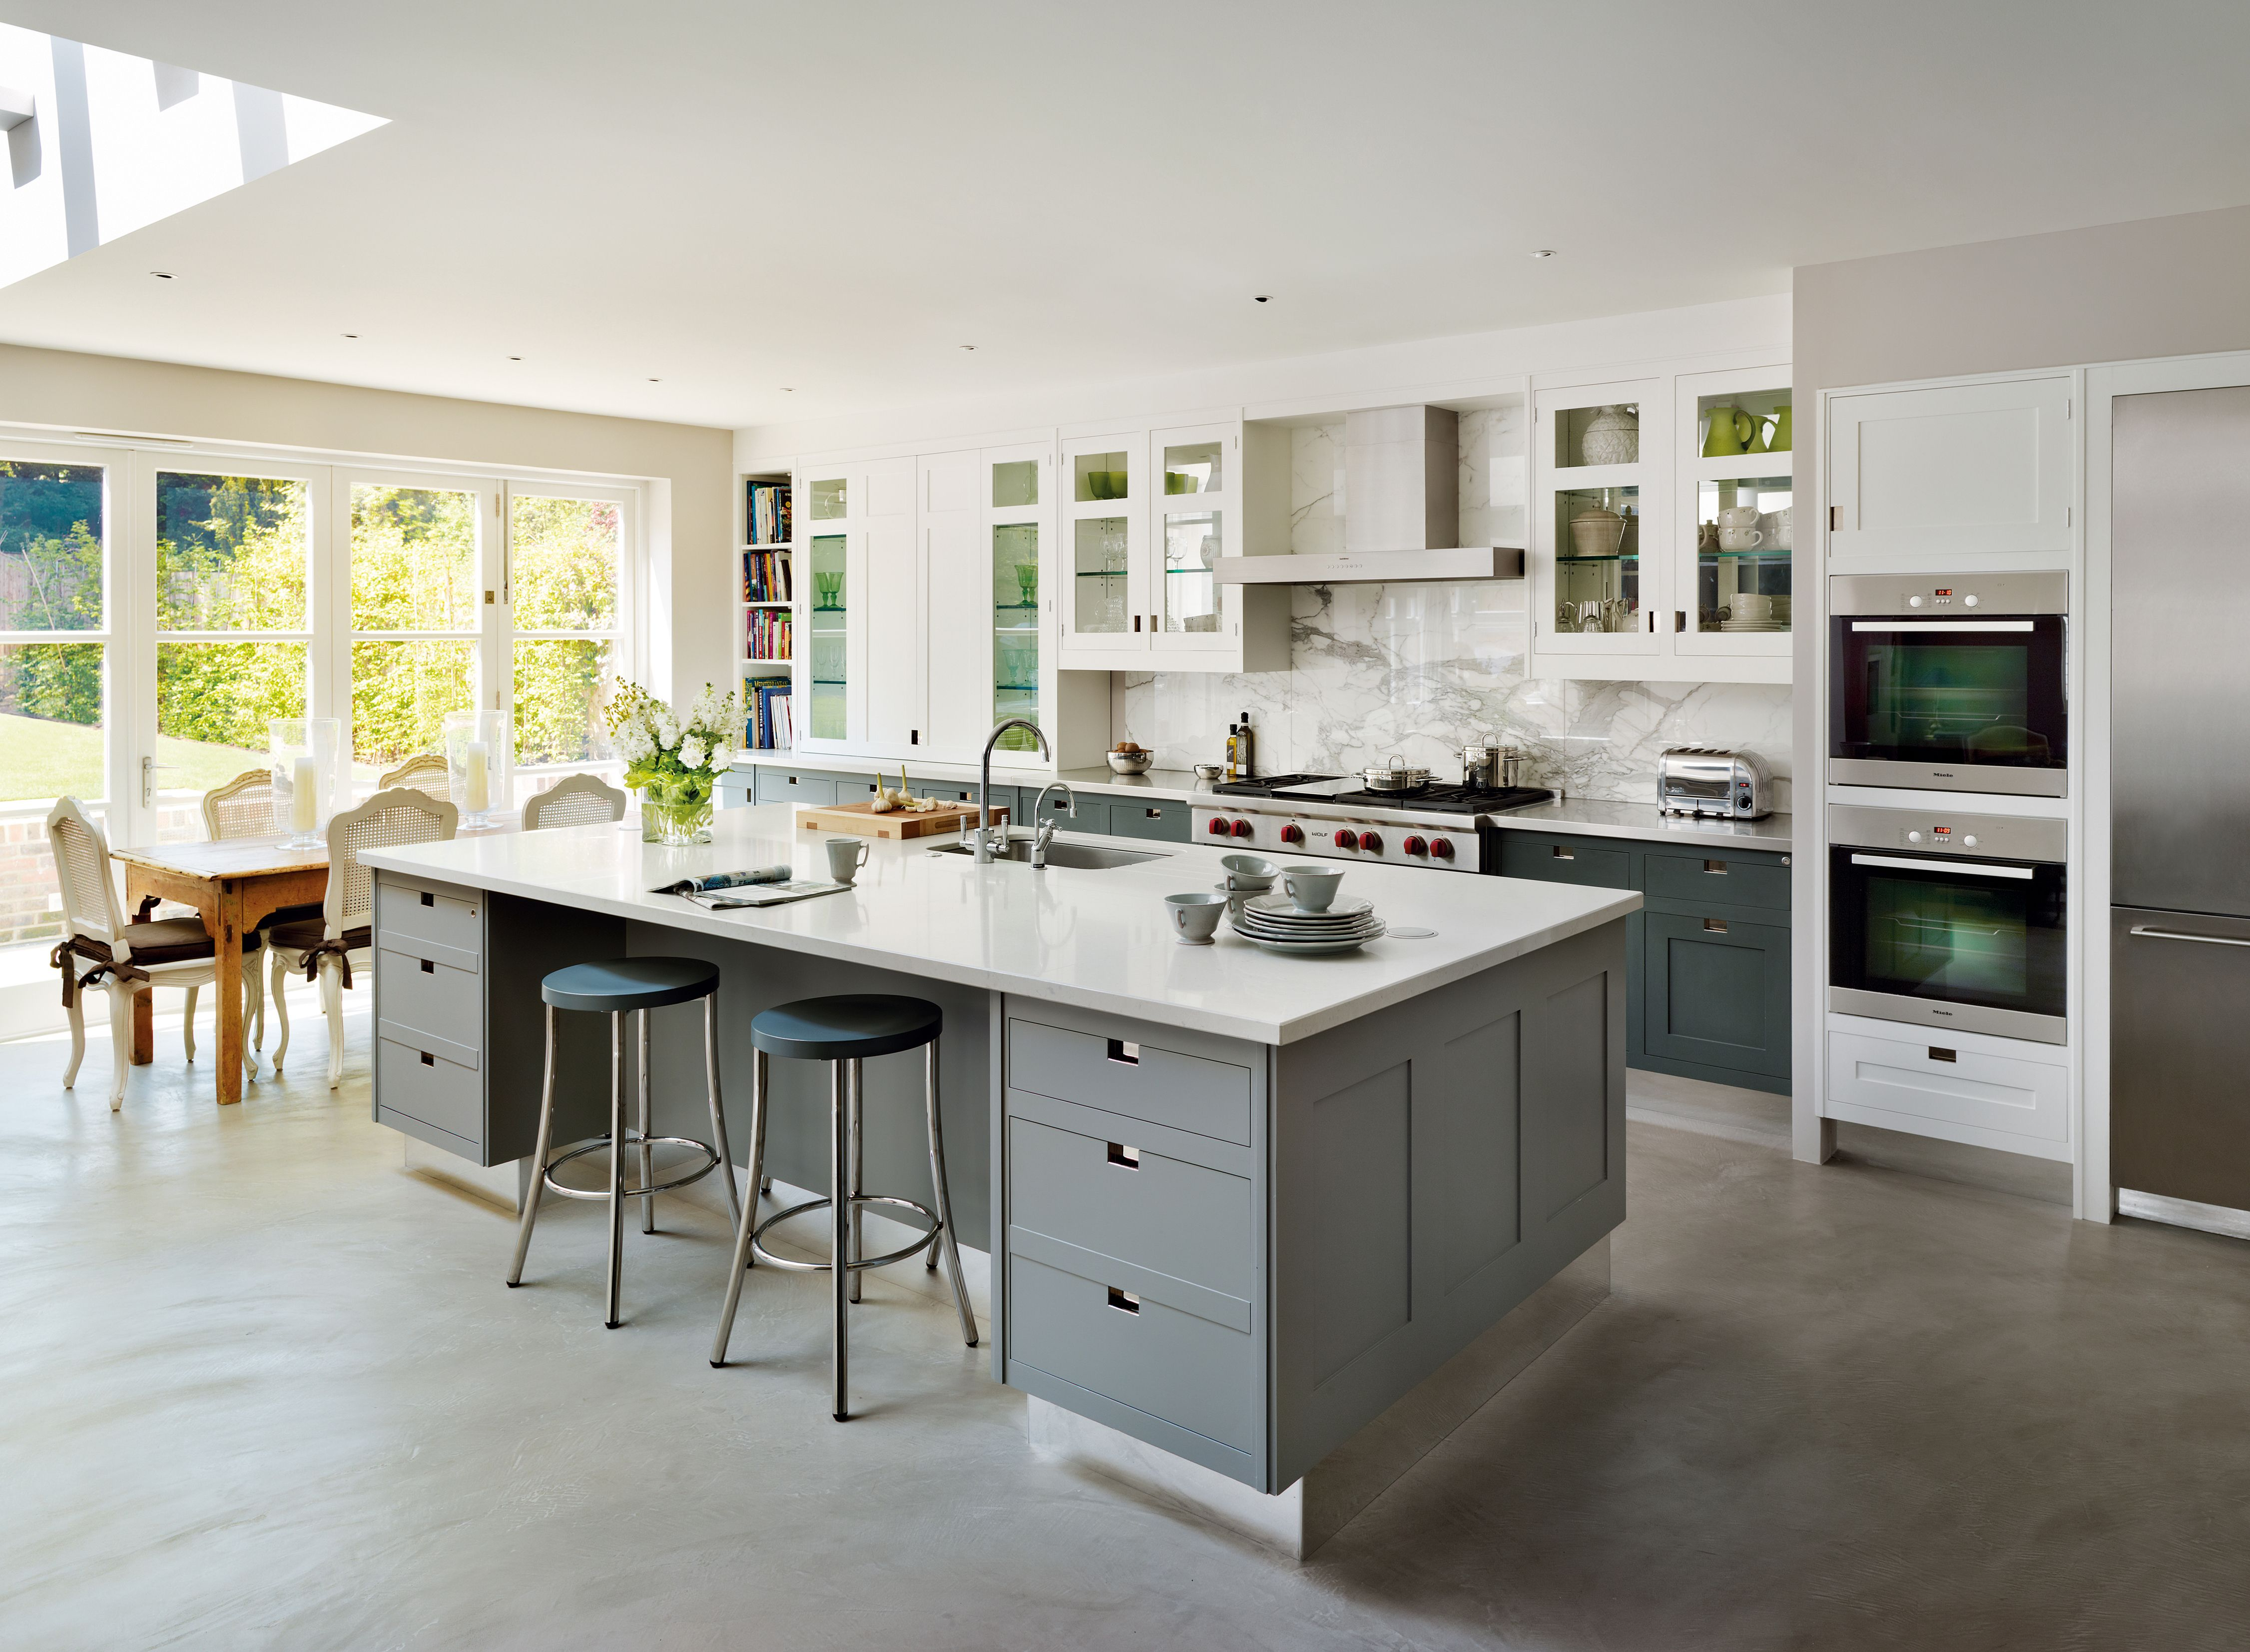 luxury furniture company, Smallbone is the leading name in kitchens ...